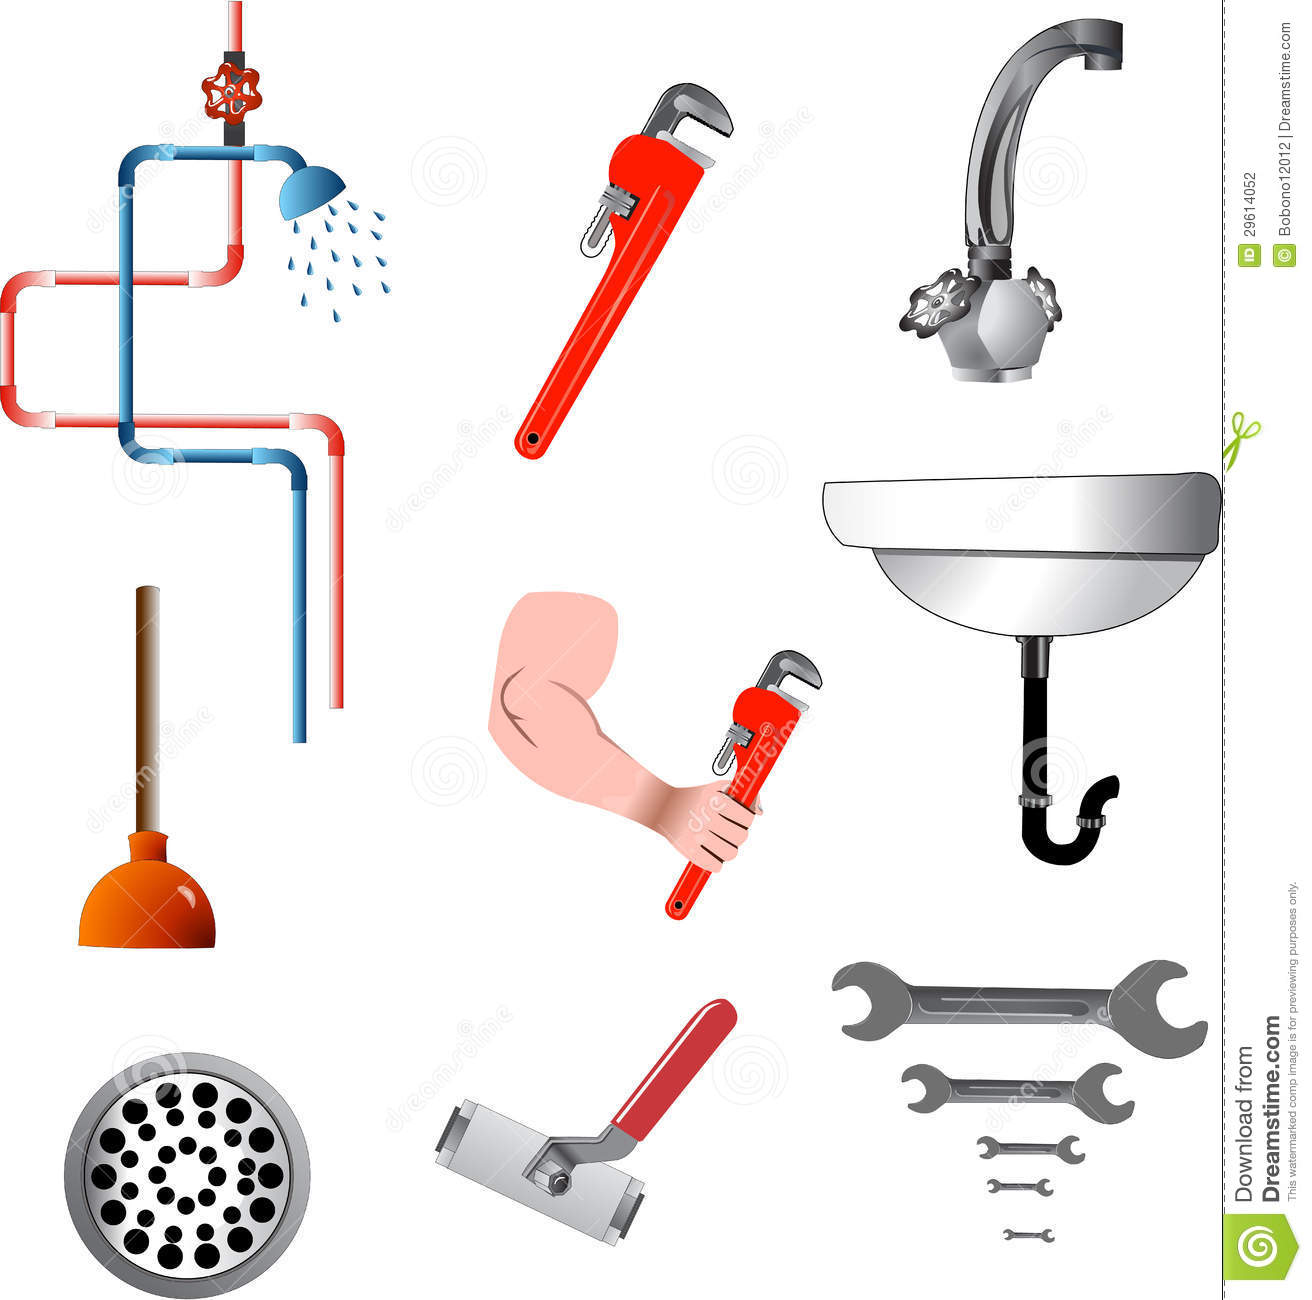 Tools And Plumbing Equipment Stock Illustration Illustration Of Miscellaneous Tools 29614052